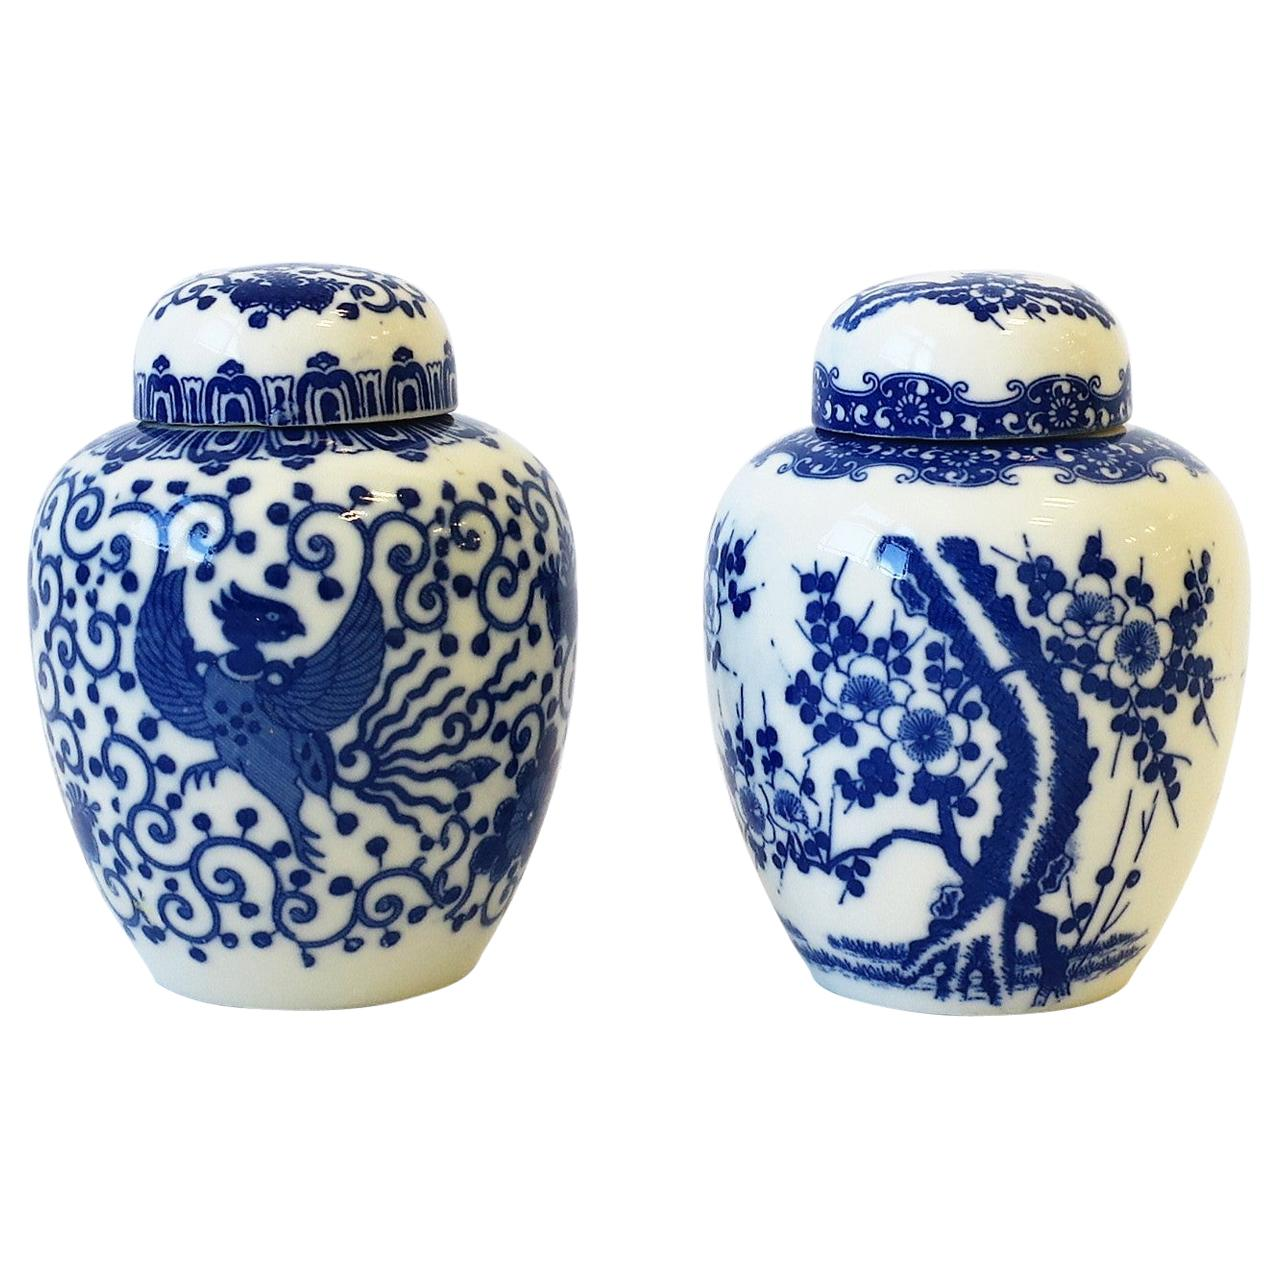 Blue and White Porcelain Japanese Ginger Jars, Pair